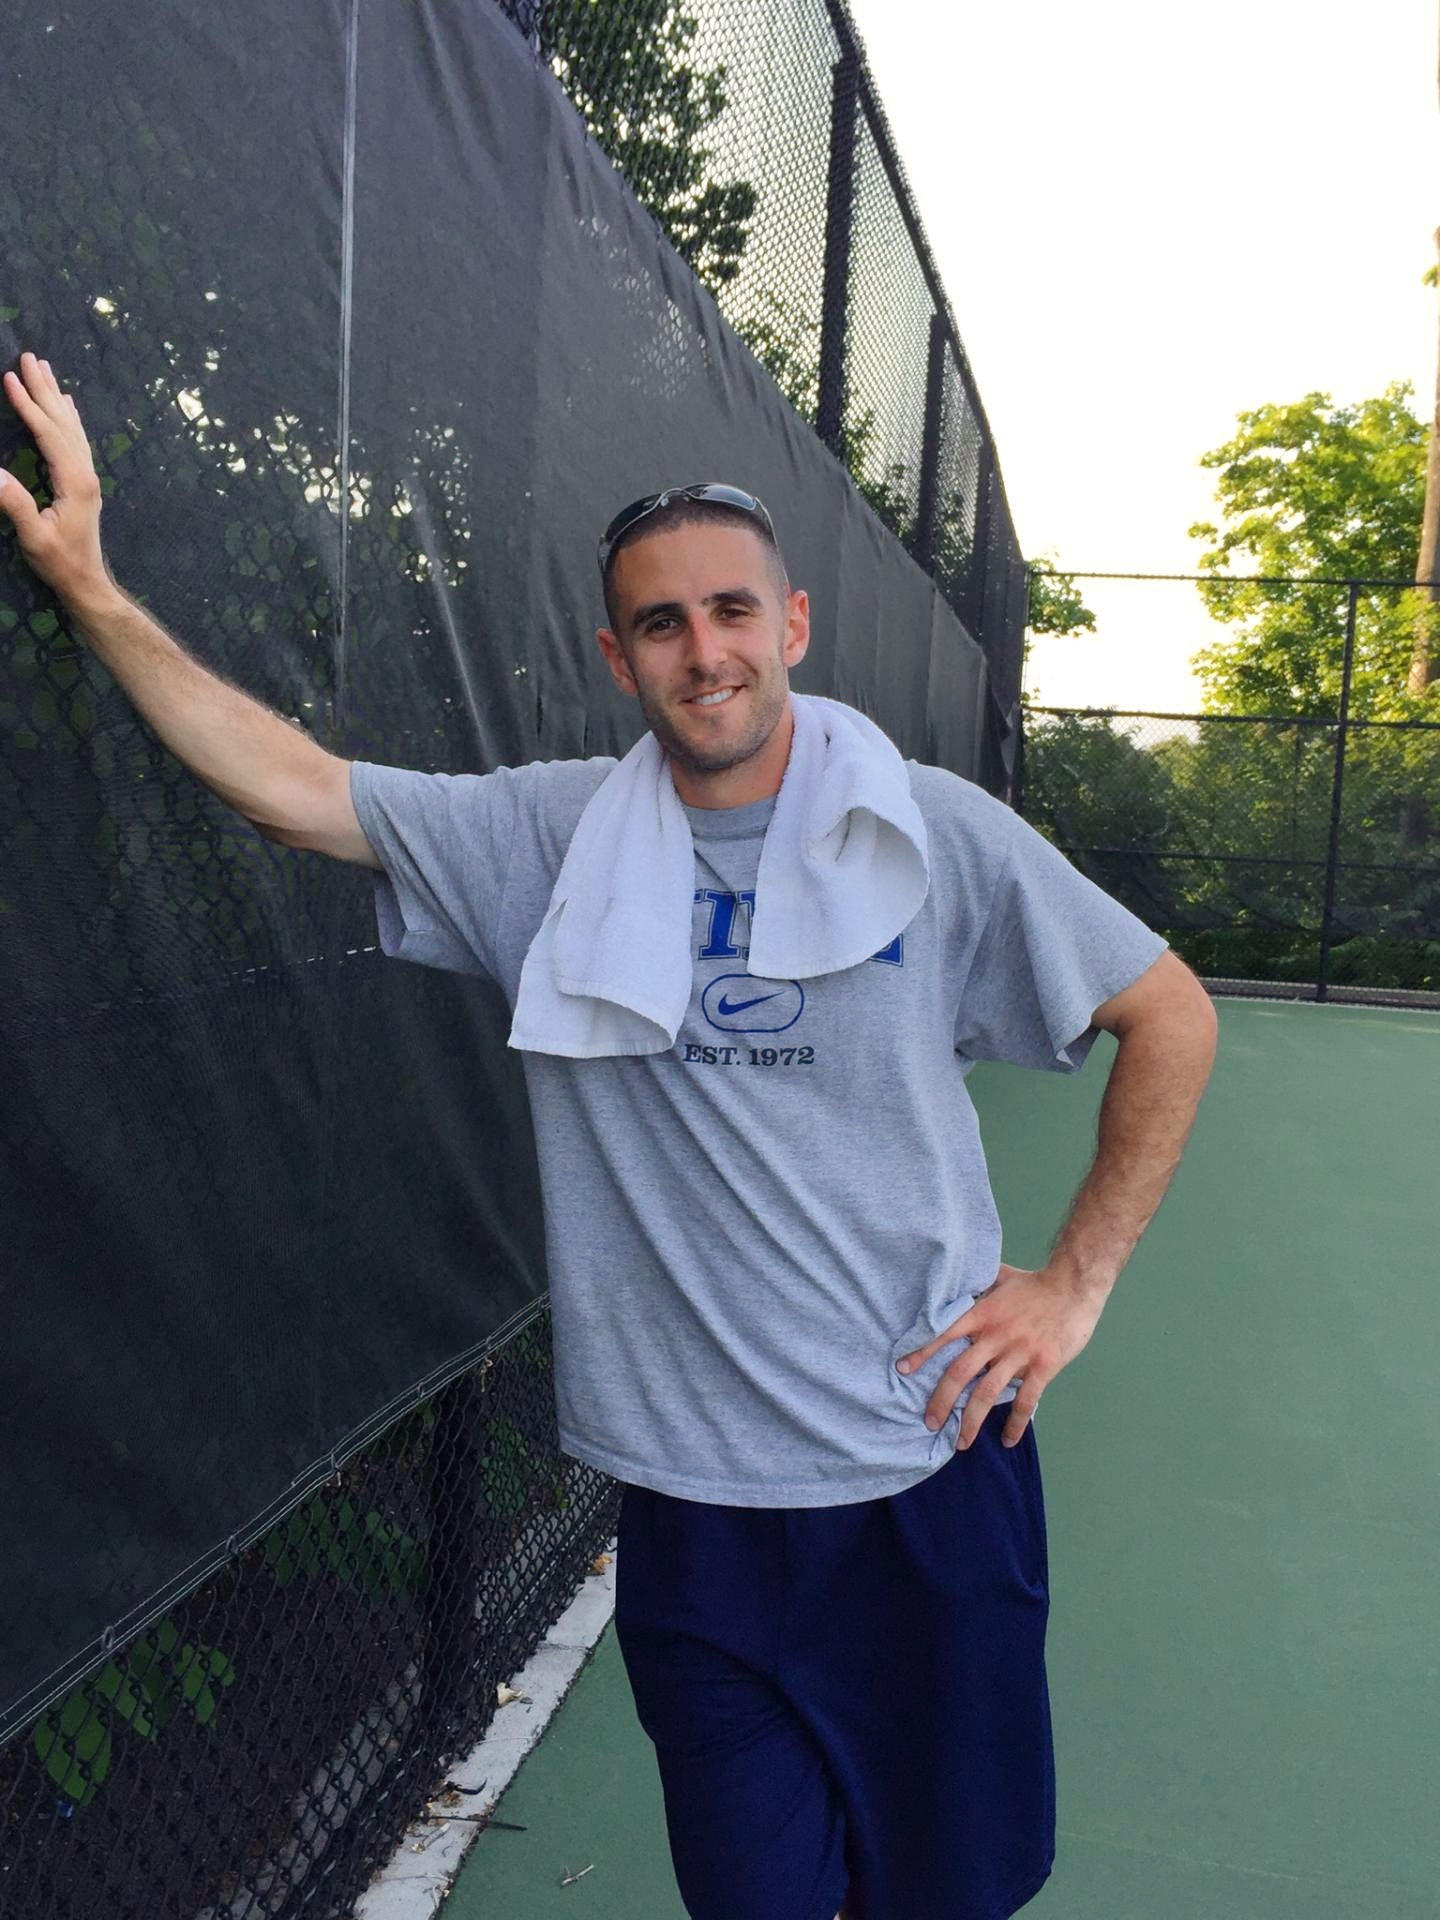 Matthew S. teaches tennis lessons in Glen Cove, NY